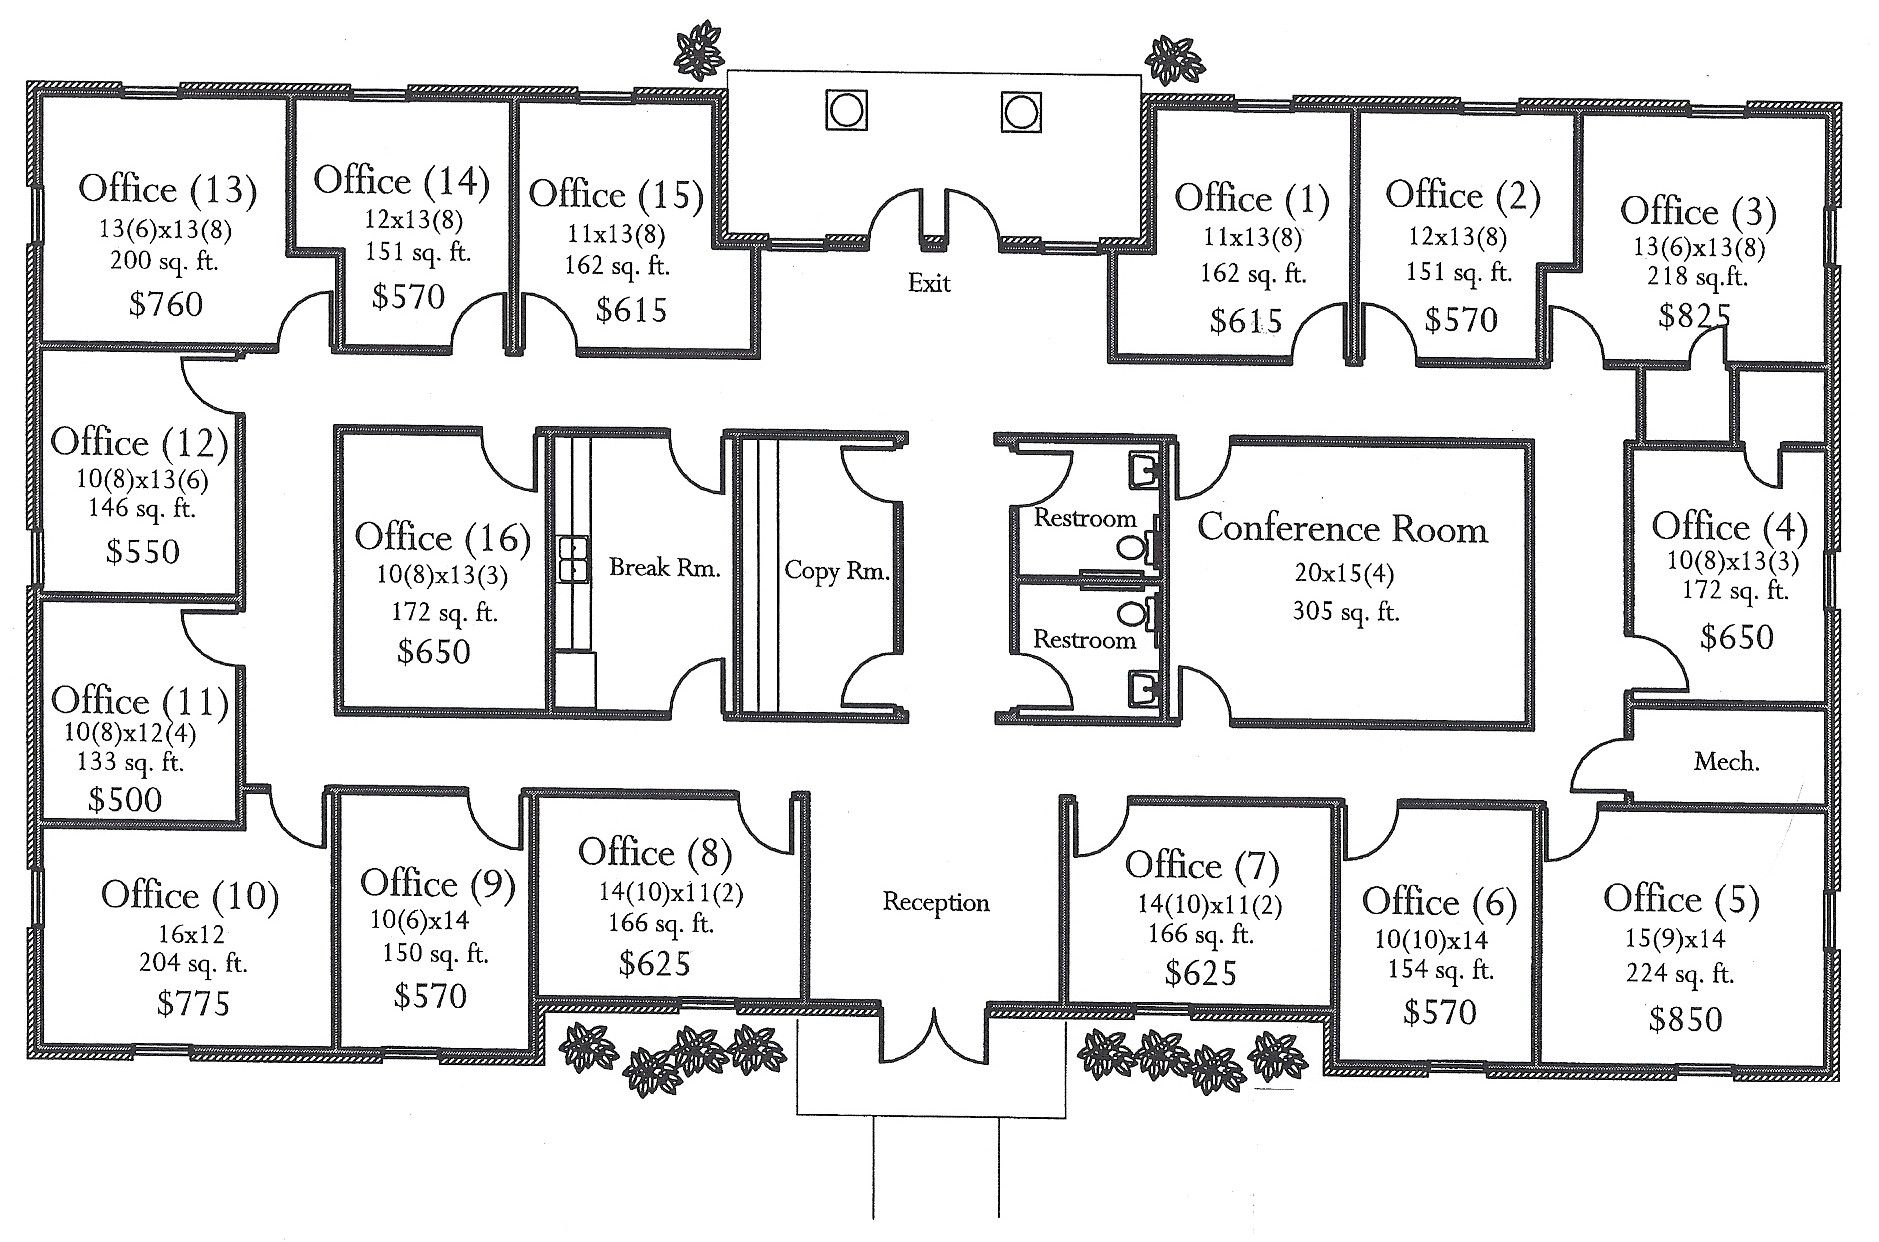 Office Building Plans House Design Office Building Plans Commercial Building Plans Building Plans